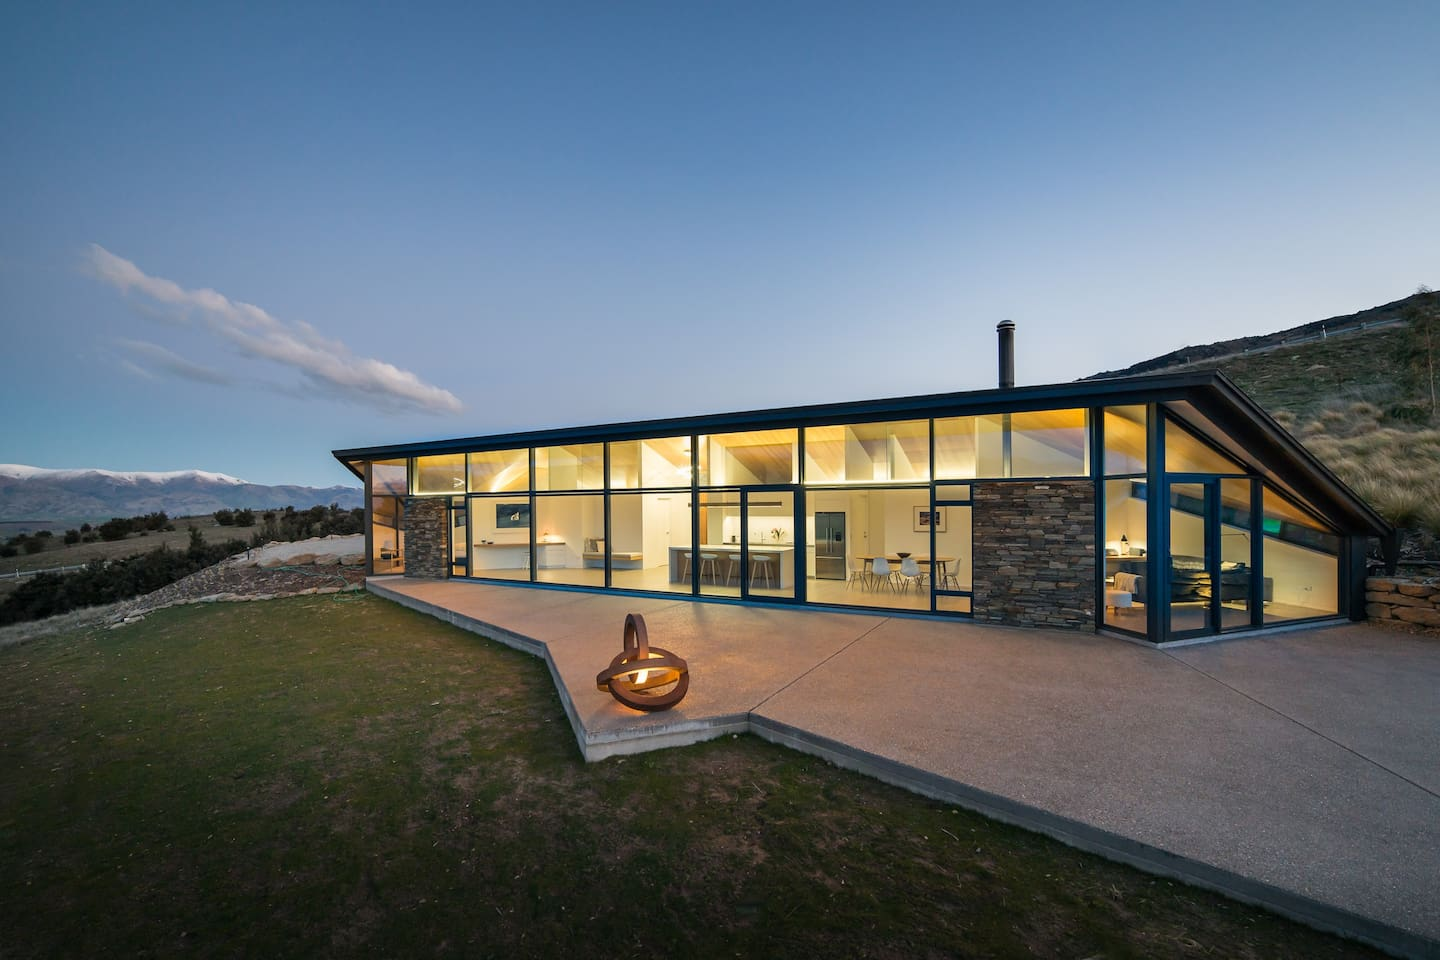 At dusk the strip uplighting makes the house glow. The sculpture, by Auckland artist Neil Donaldson, is called Circles of Life. The stone walls comprise local Schist. There is moveable outdoor furniture to take in the view from any angle.